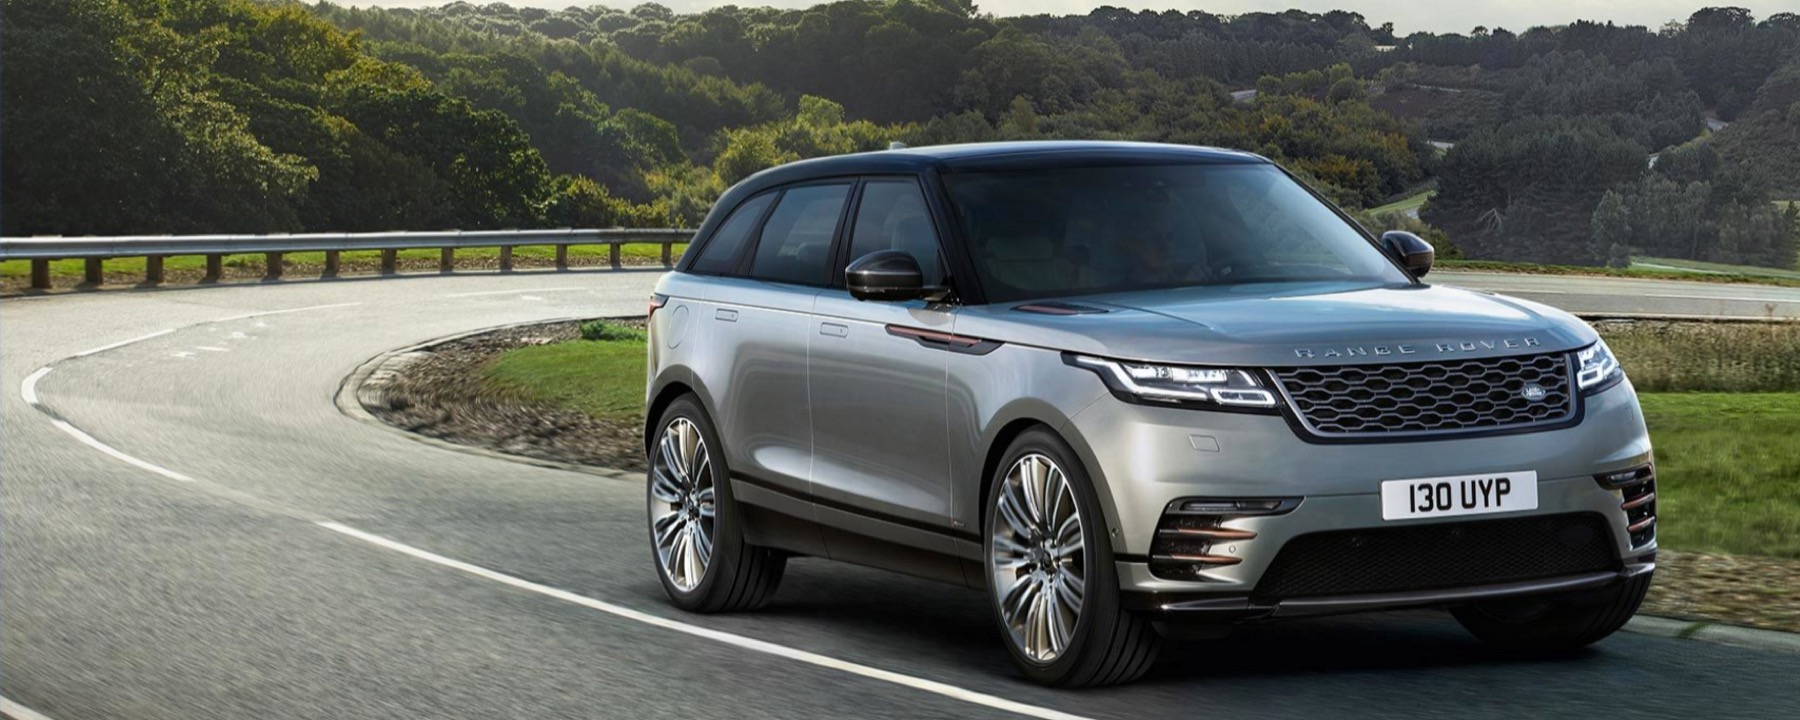 Introducing The 2018 Land Rover Velar Indigo Auto Group Blog